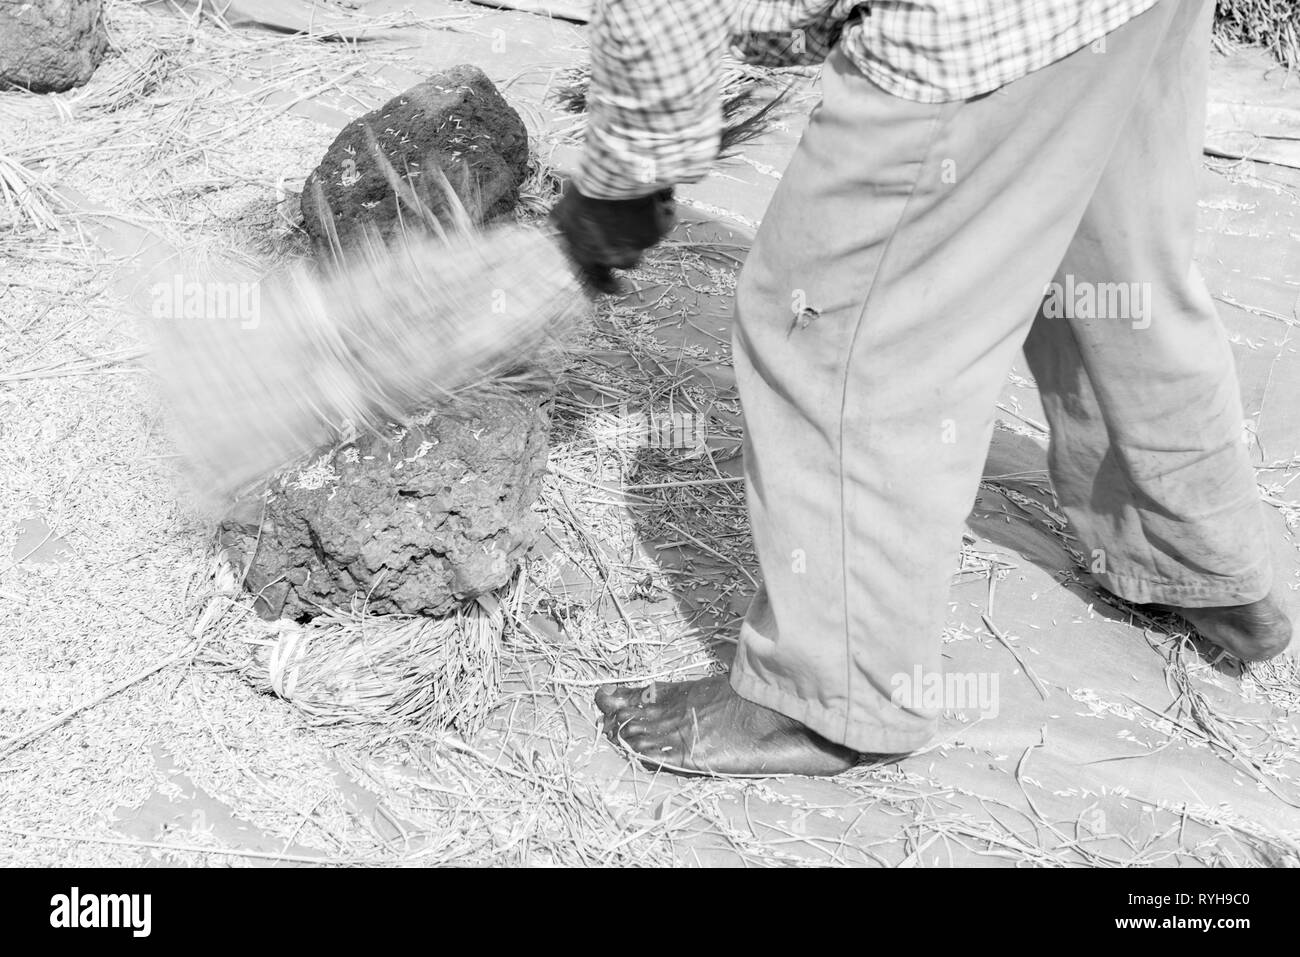 INLE LAKE, MYANMAR - 27 NOVEMBER, 2018: Black and white picture of burmese man tapping to collect rice in Inle Lake, Myanmar - Stock Image